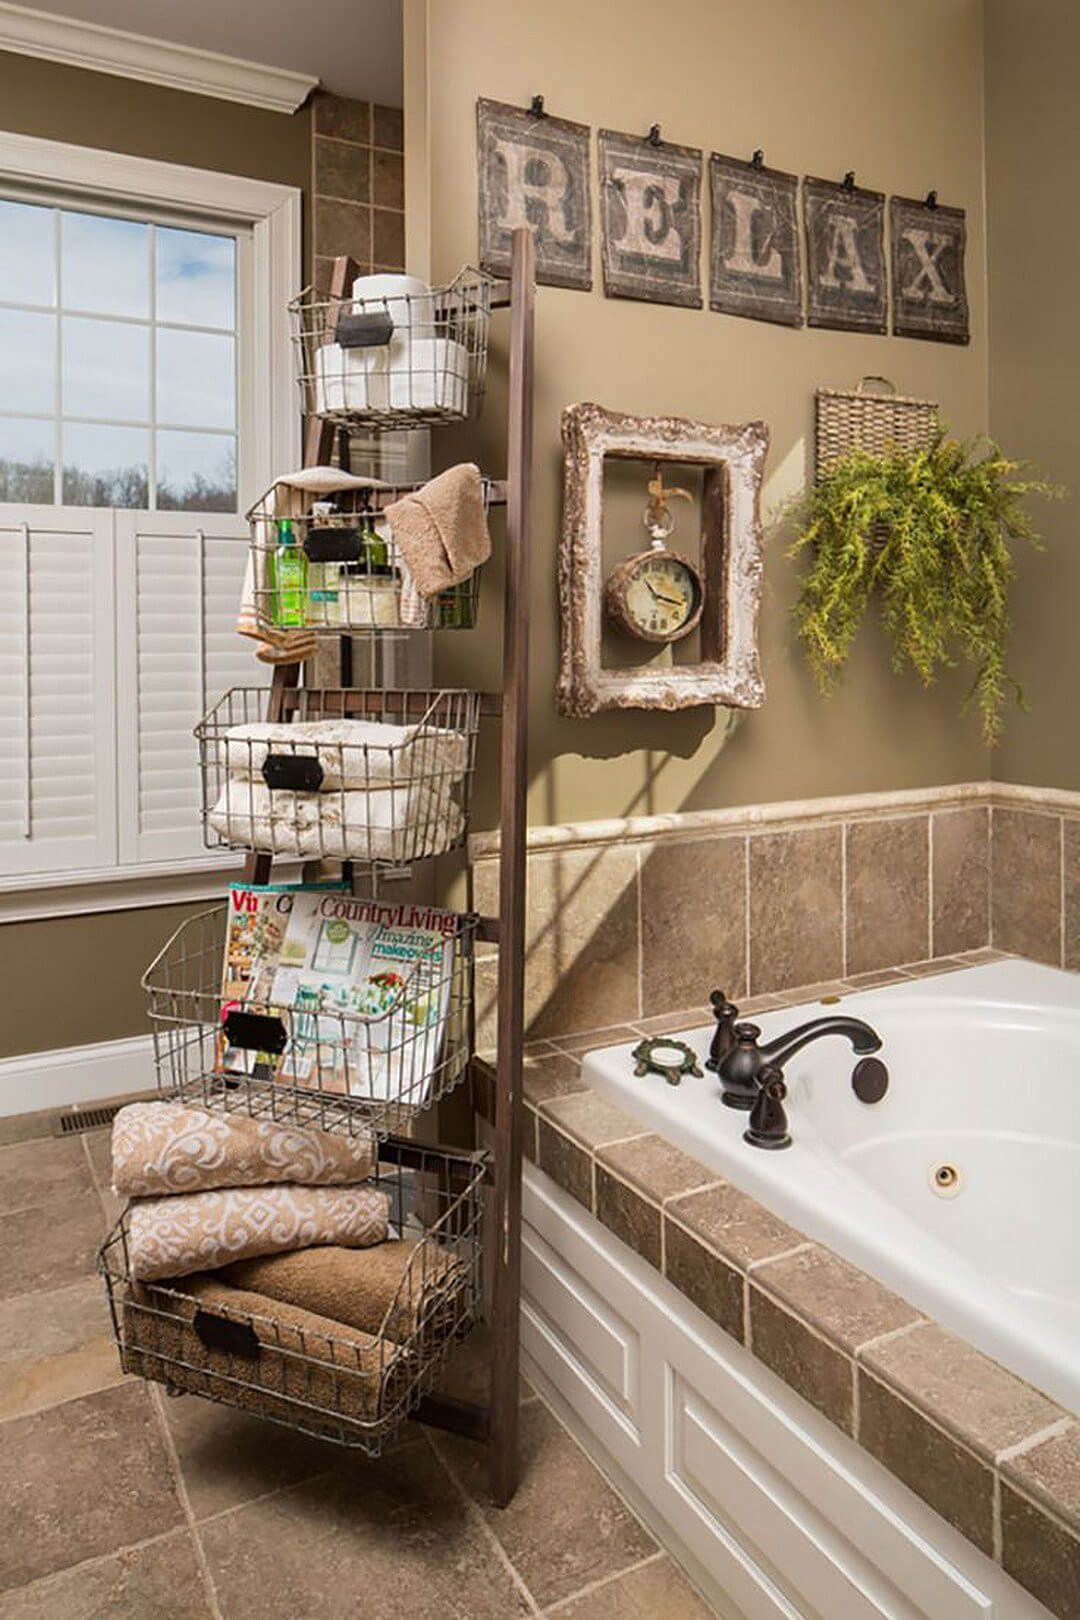 Towel Storage Ideas For Bathroom Entrancing 34 Spacesaving Towel Storage Ideas For Your Bathroom  Towels Design Ideas